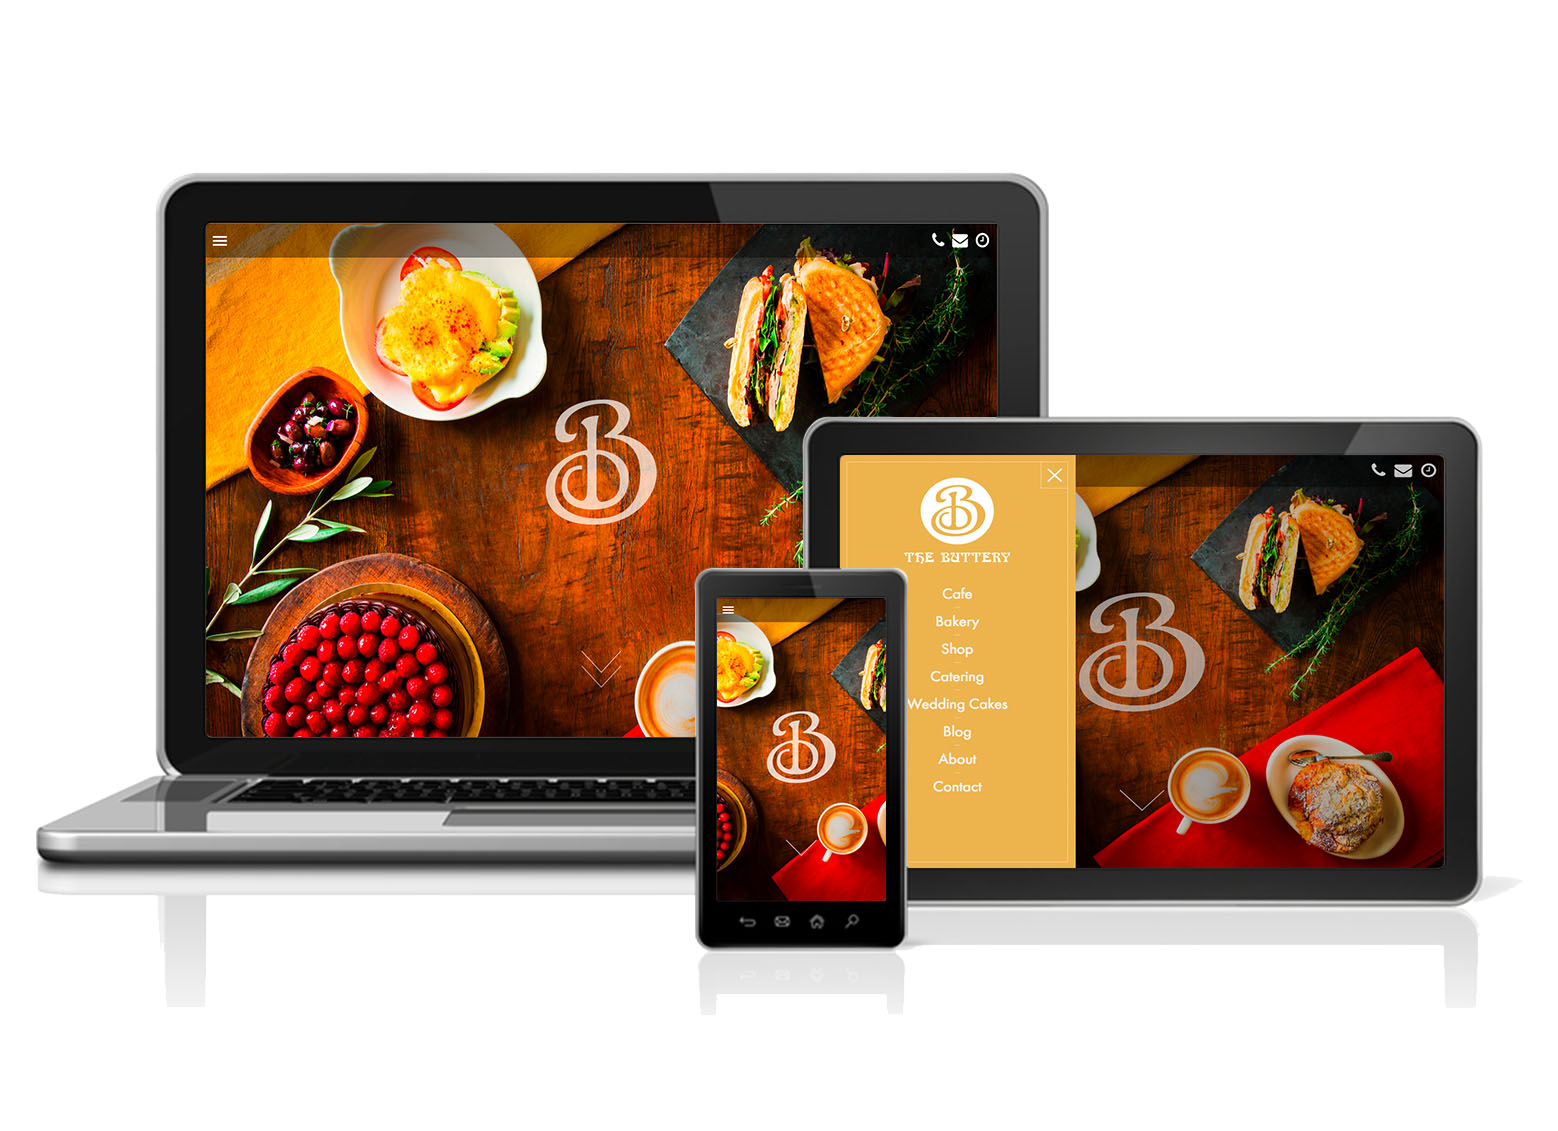 Example responsive web design on desktop, tablet, and mobile